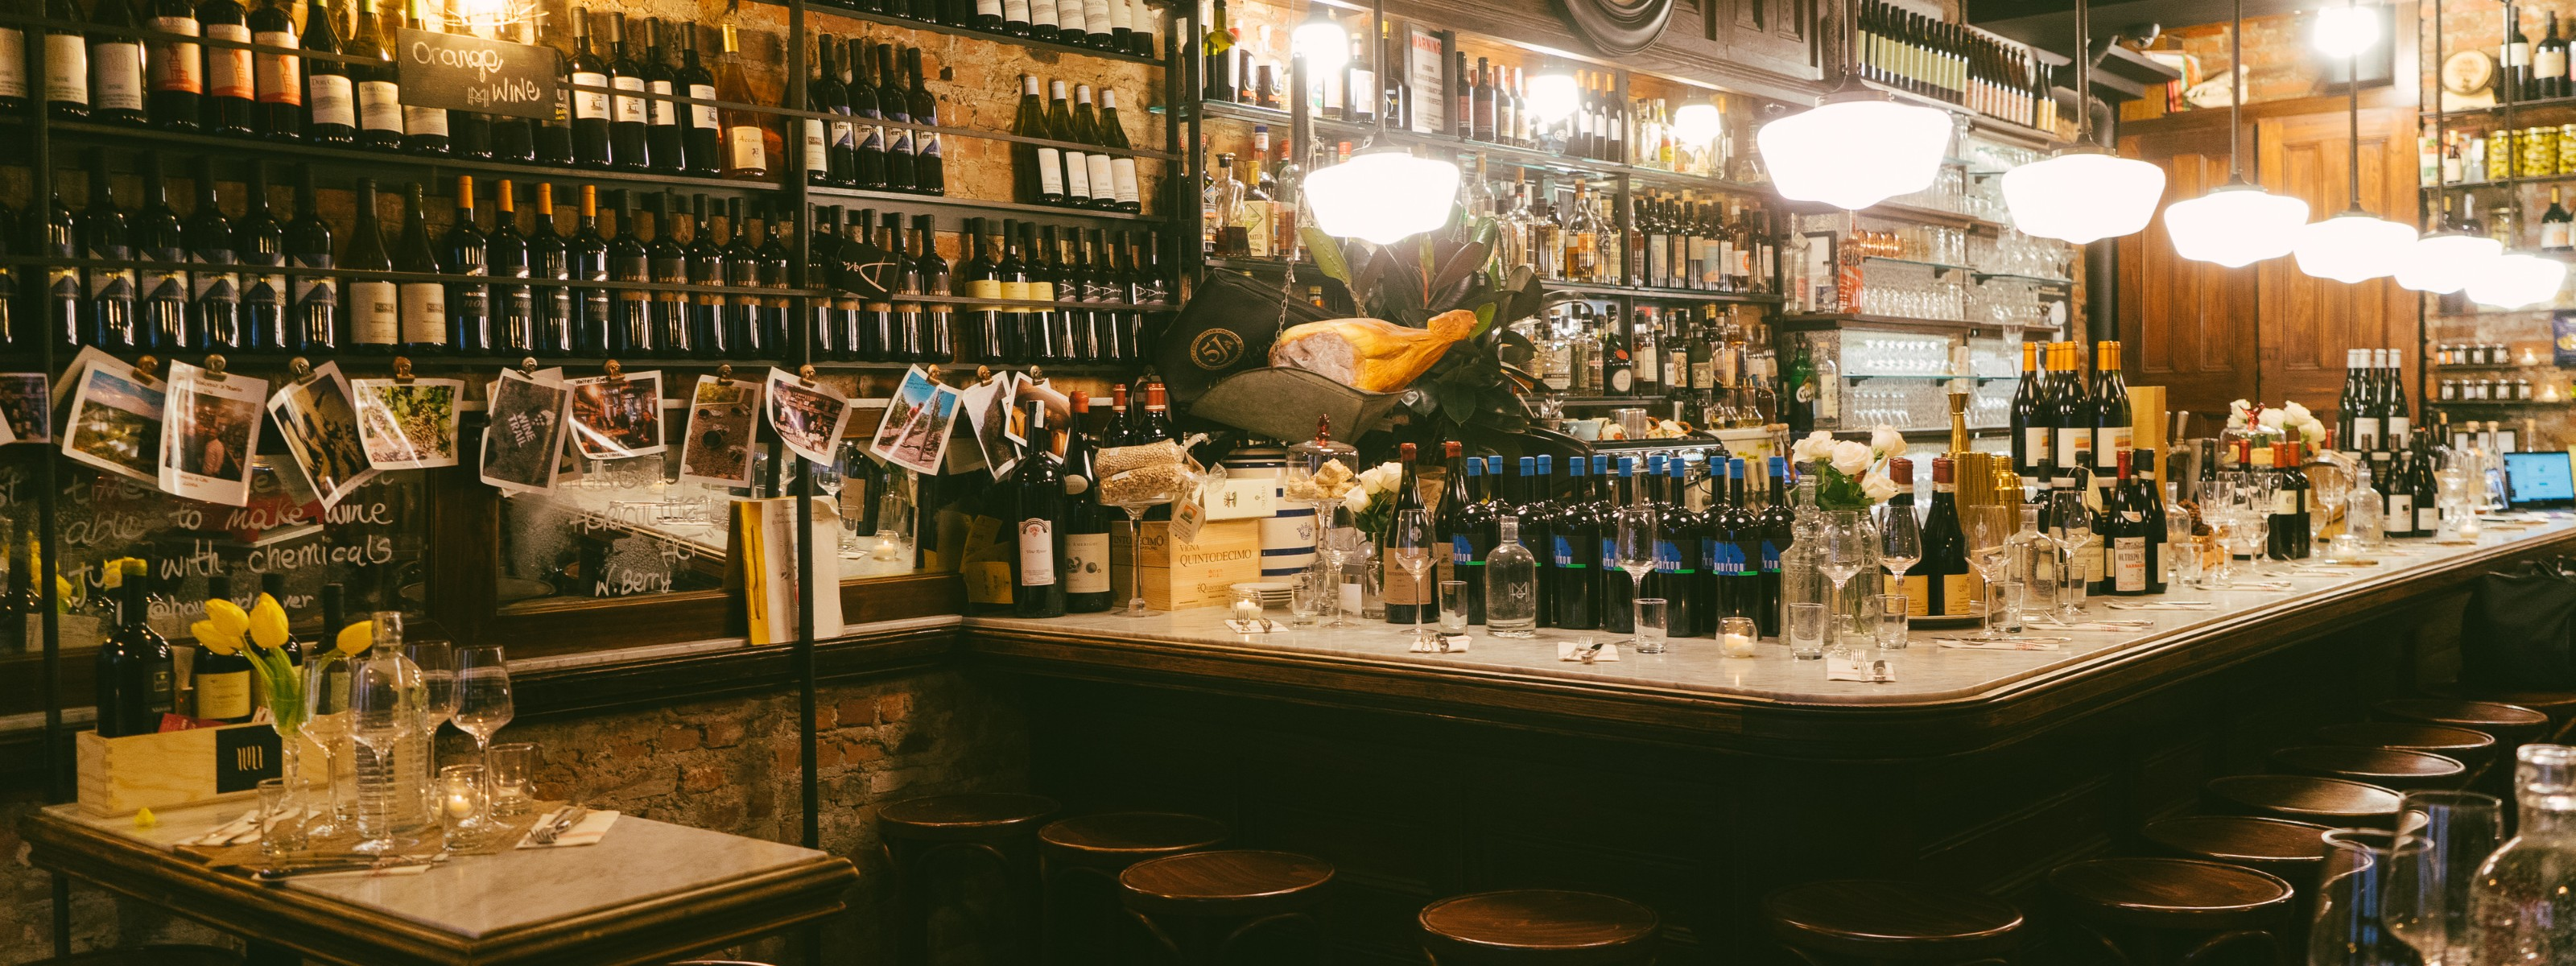 Where To Drink When You Want To Learn About Wine - New York - The Infatuation